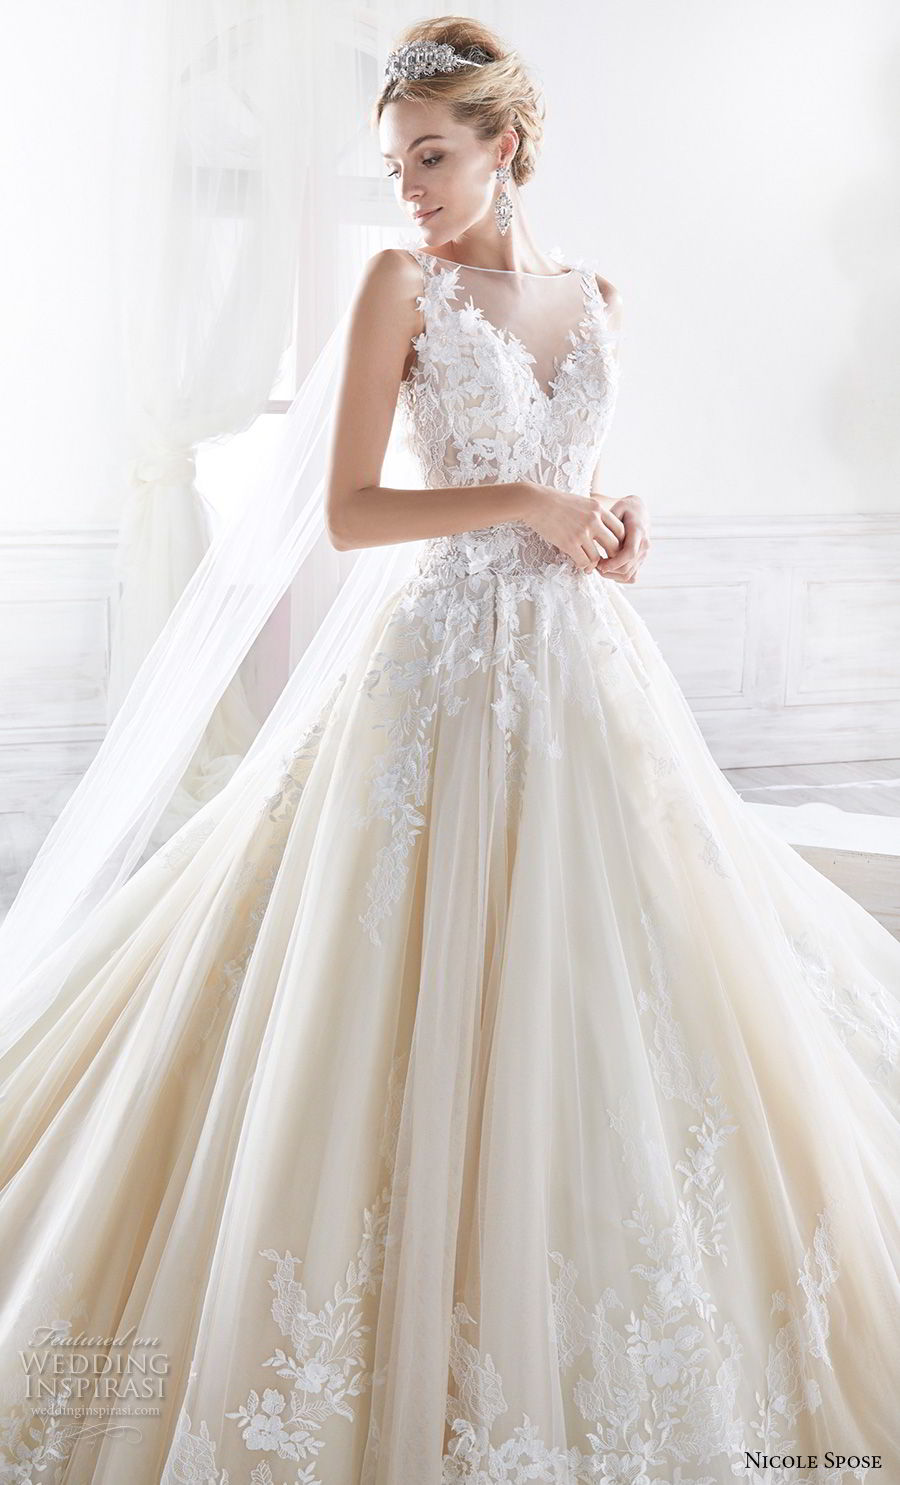 nicole spose 2018 bridal sleeveless illusion bateau v neck heavily embellished bodice princess champagne a line wedding dress sheer button back royal train (5) zv